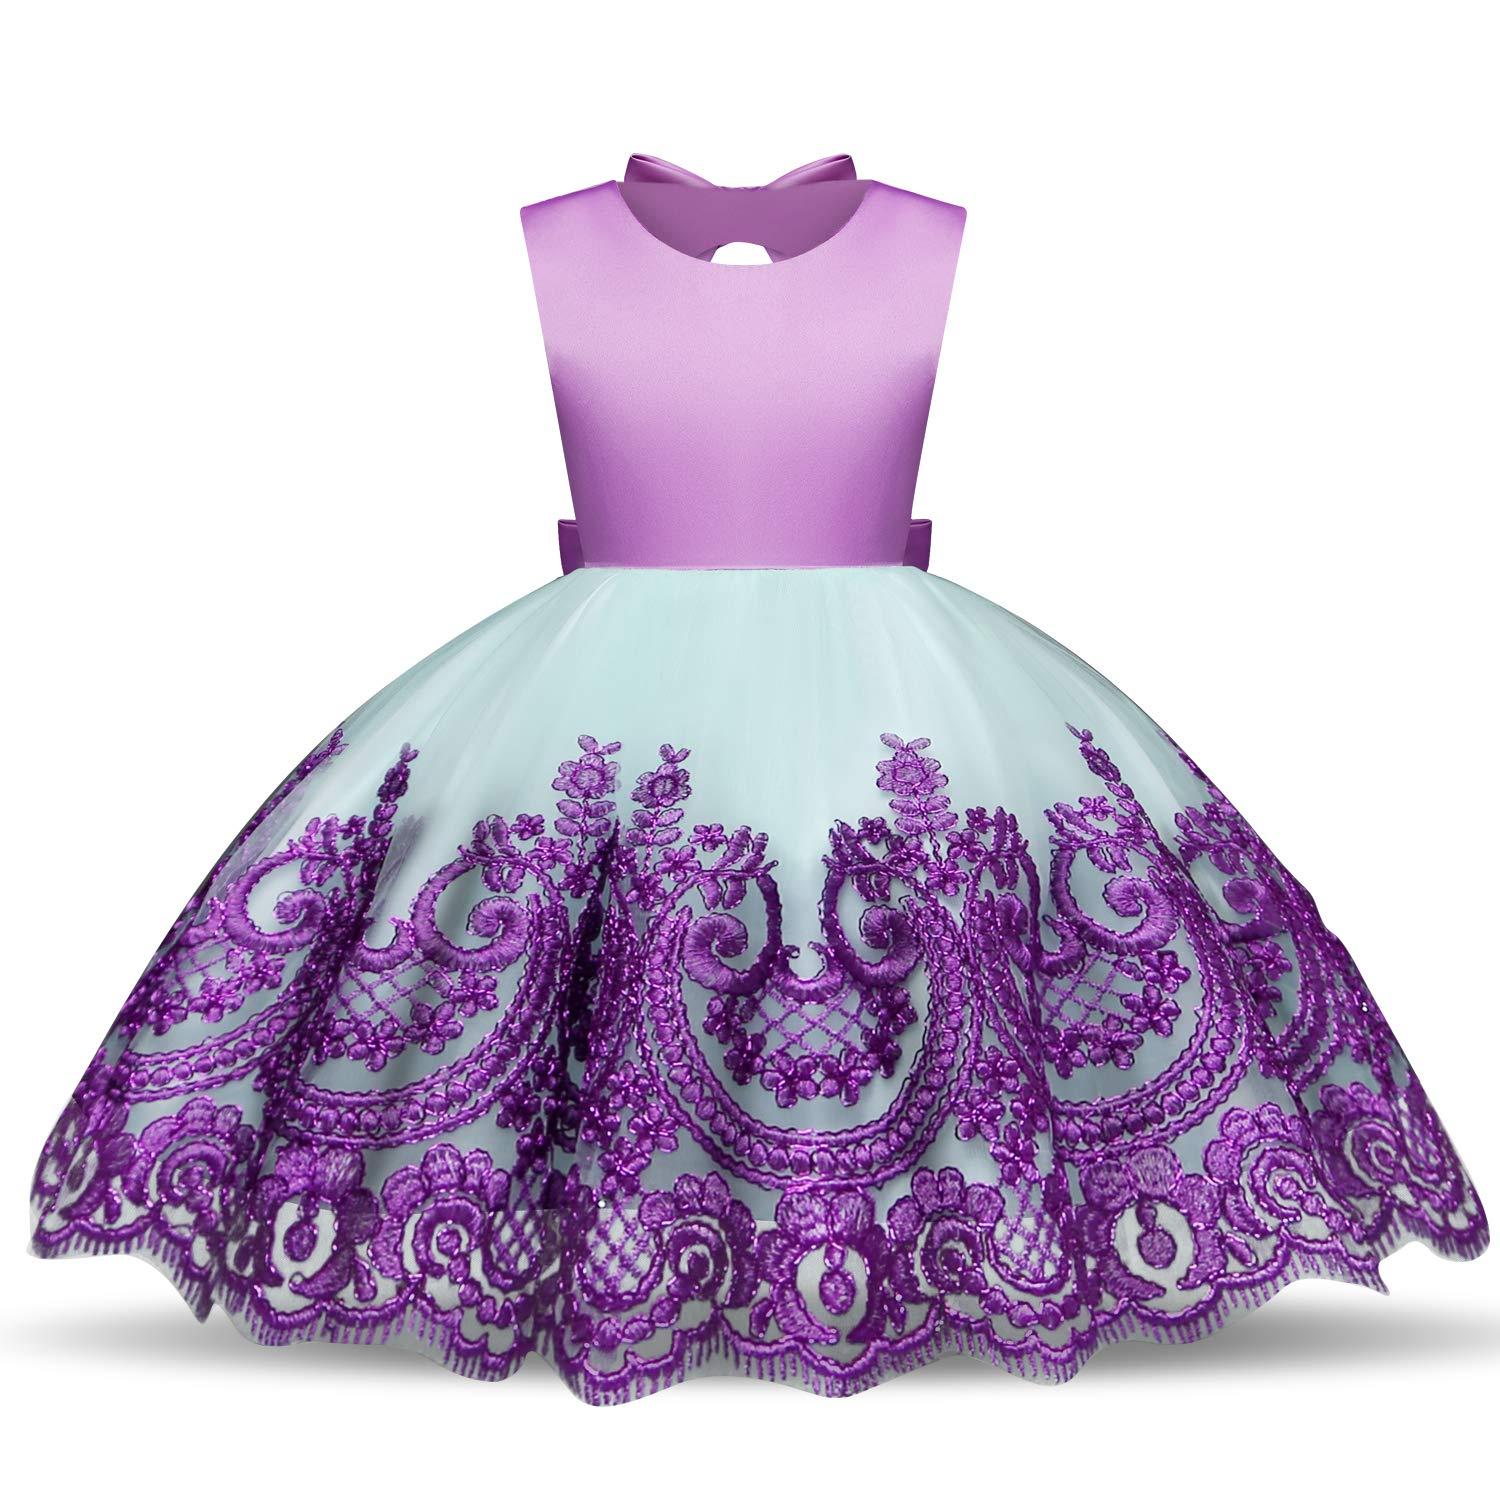 NNJXD Kids Back Bow Embroidered Tulle Flower Girls Wedding Birthday Princess Formal Dress Size (120) 4-5 Years